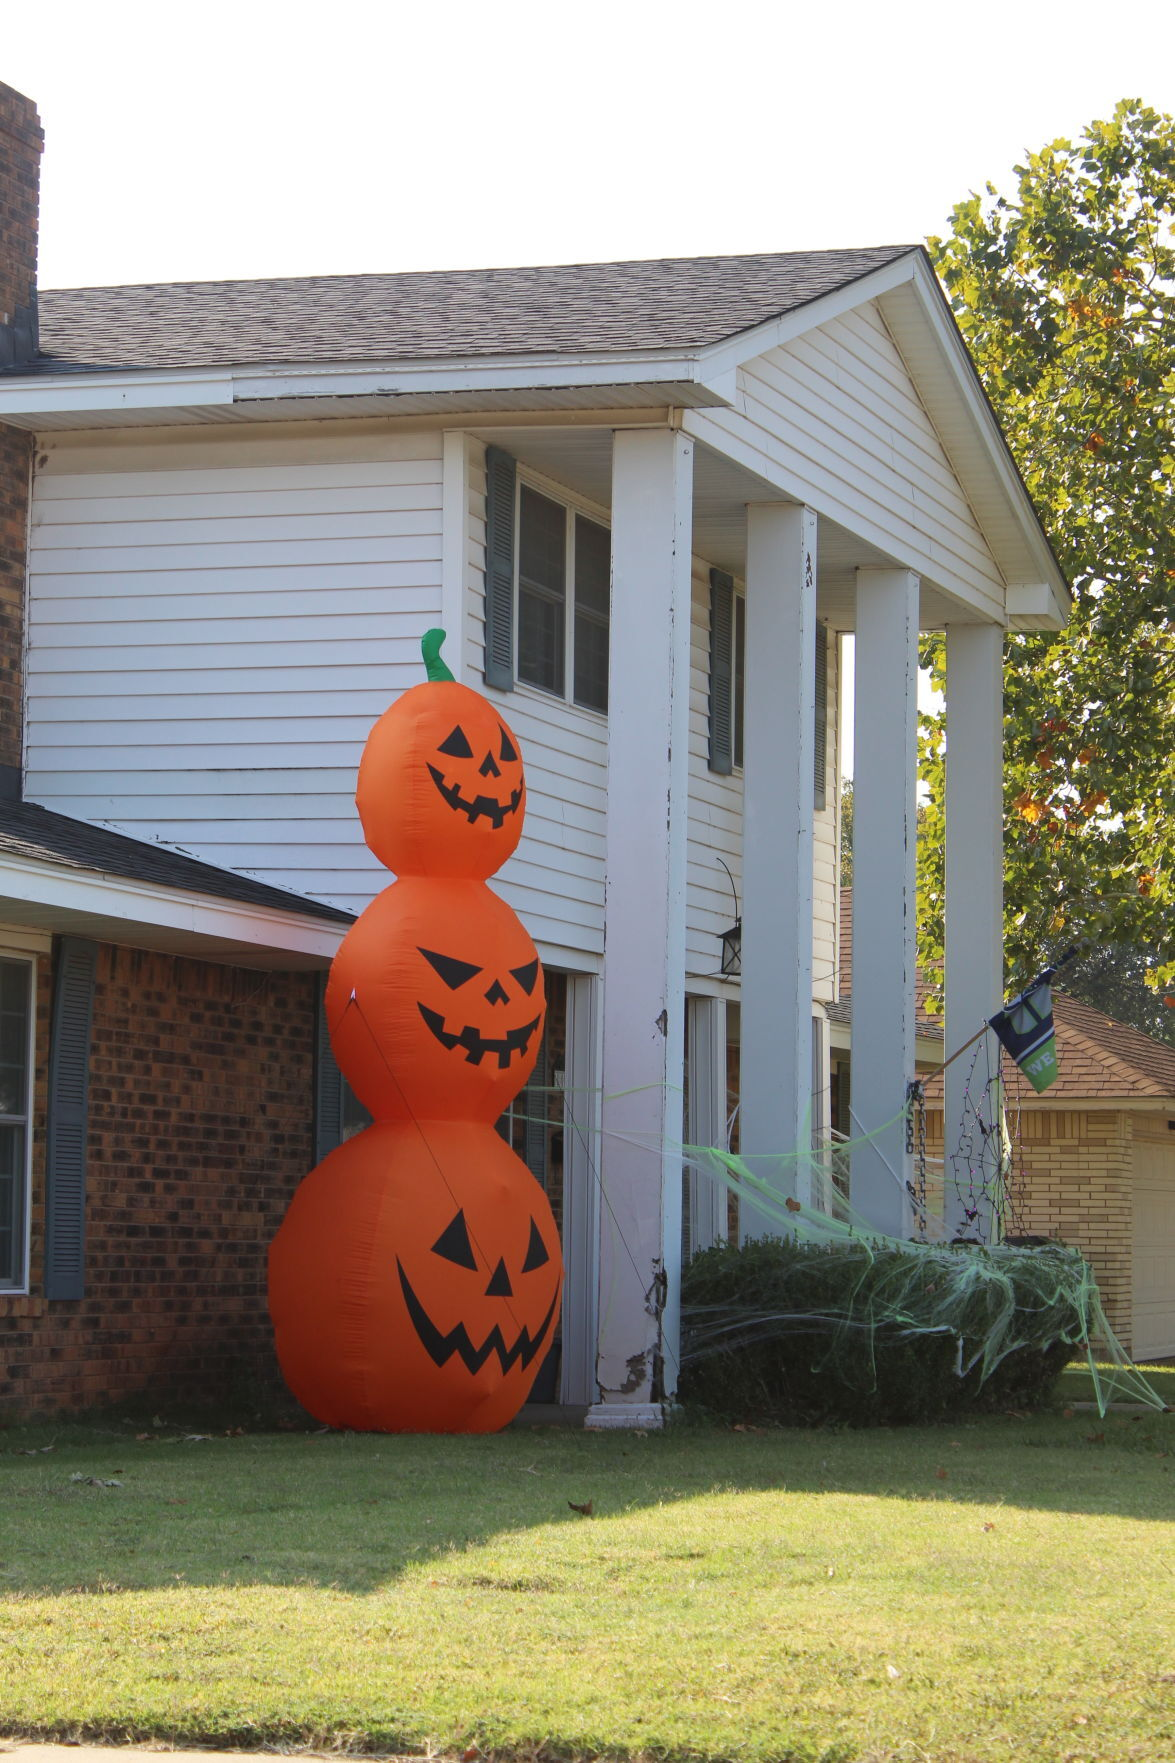 Pumpkins stand guard over house